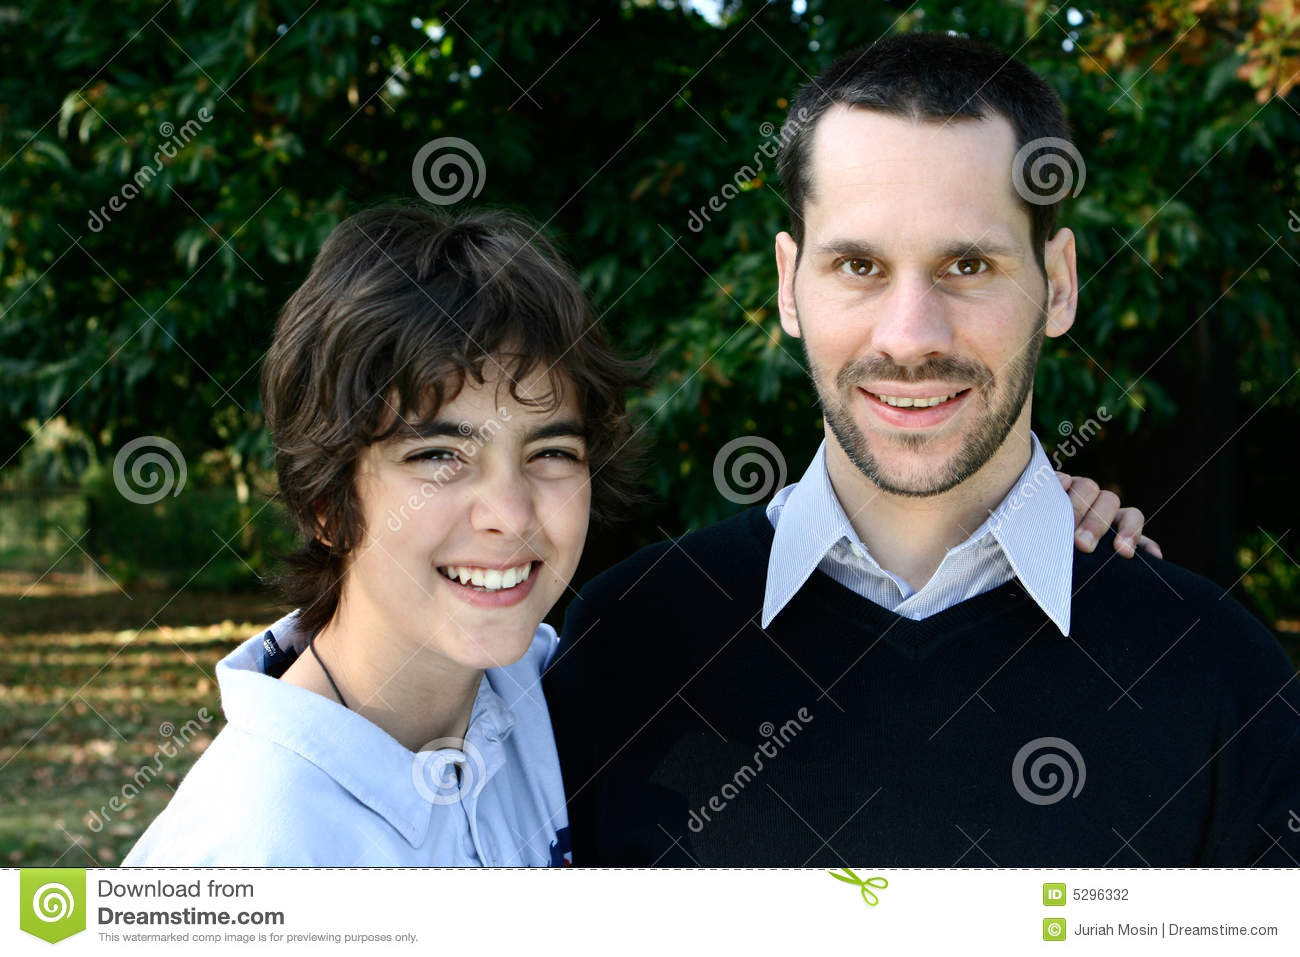 Boy with loving father, outdoor